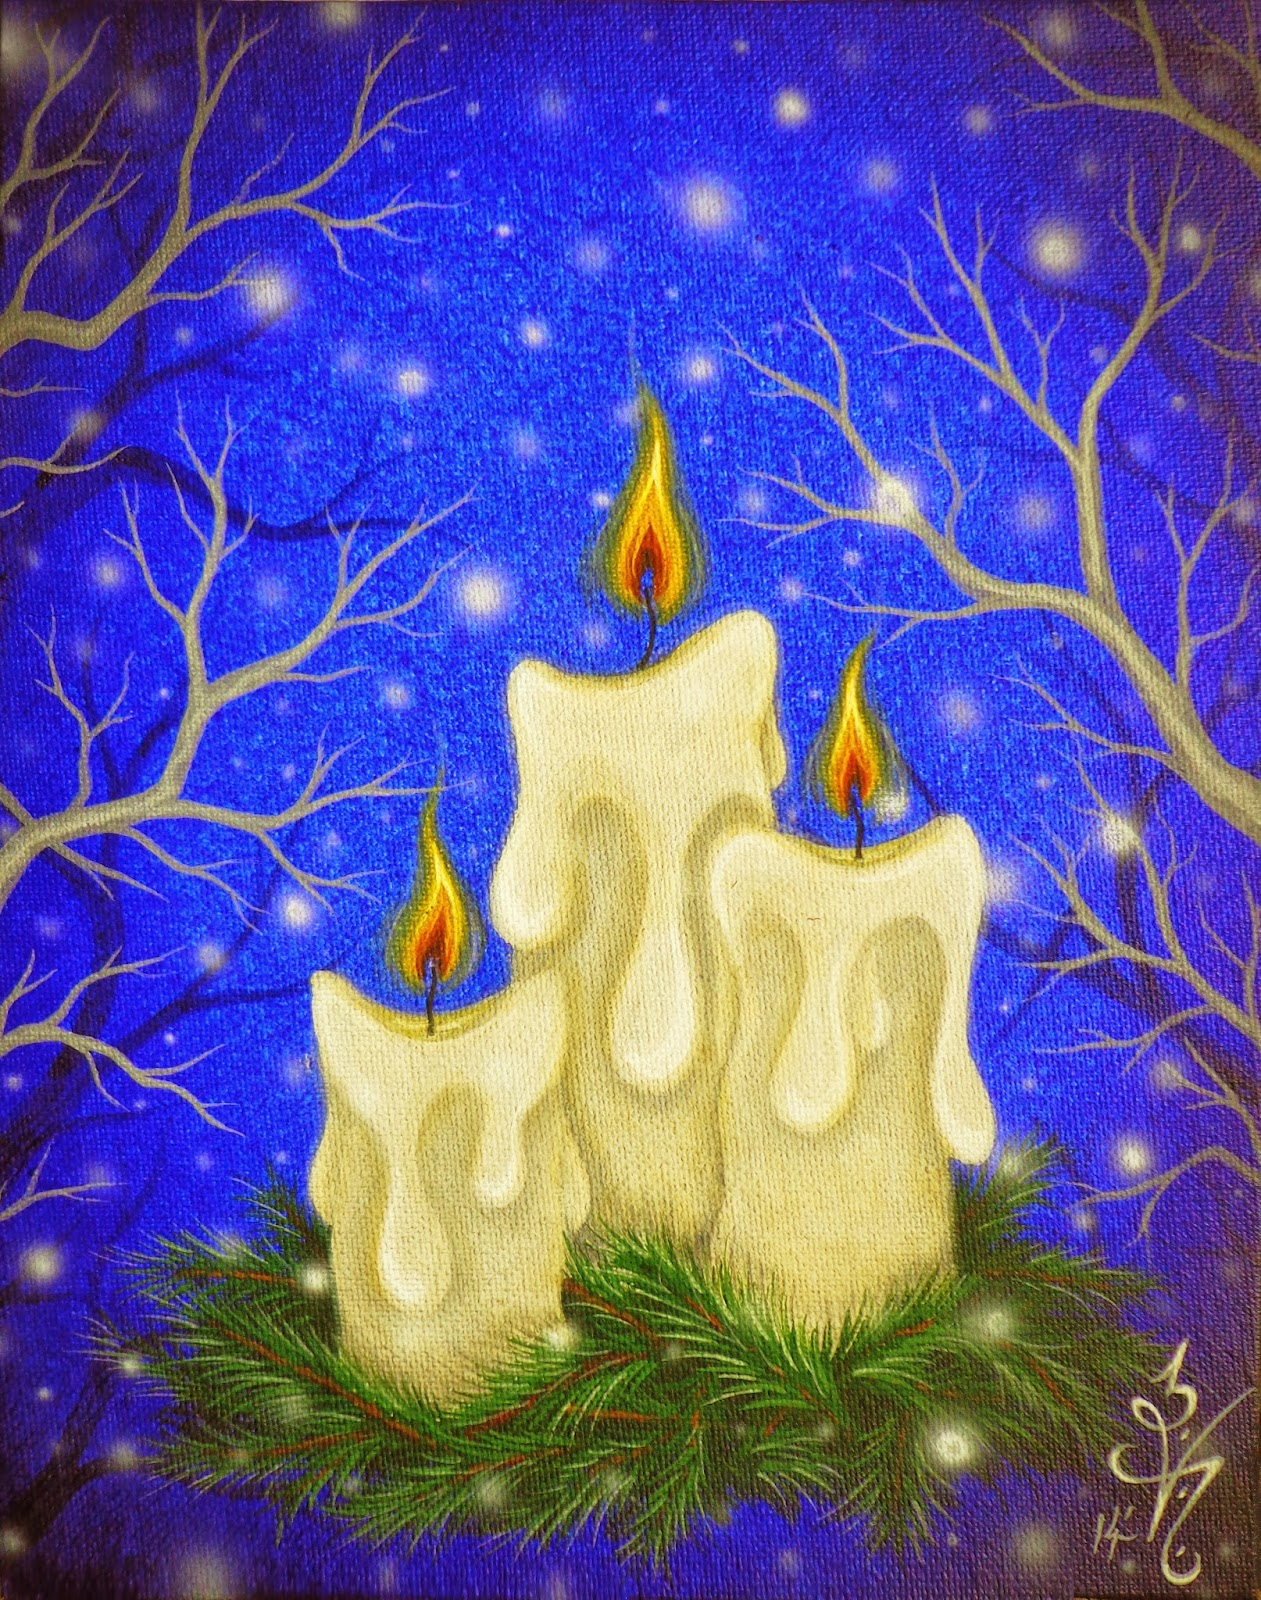 https://www.etsy.com/listing/209606168/original-winter-snow-candle-painting?ref=shop_home_feat_1